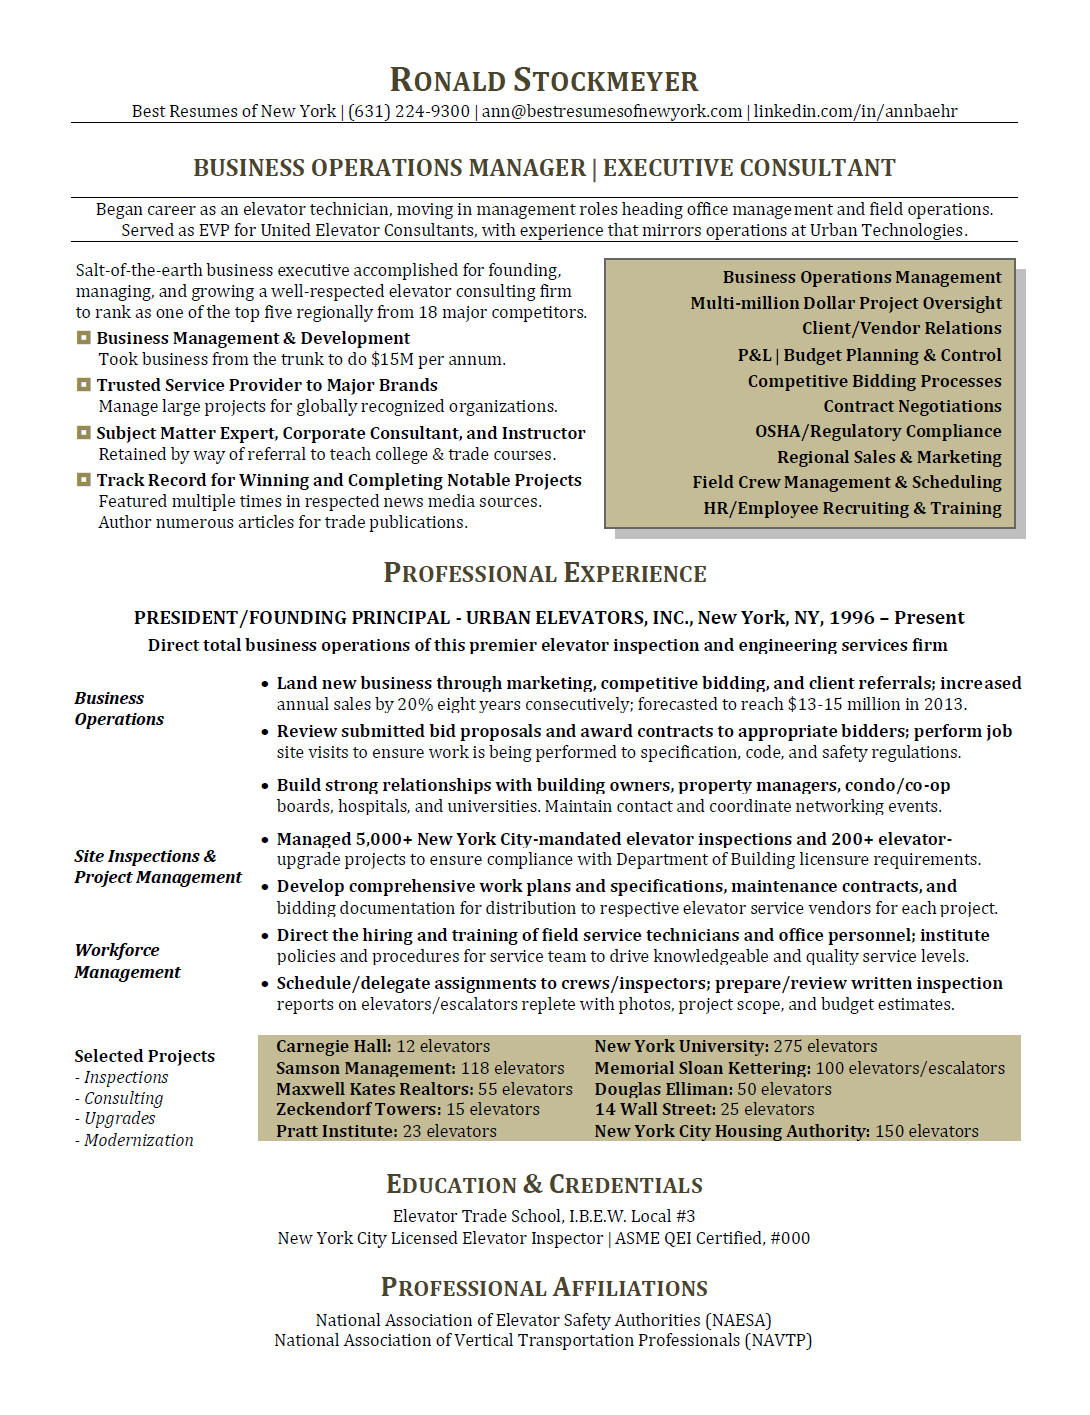 Resume - Business Operations